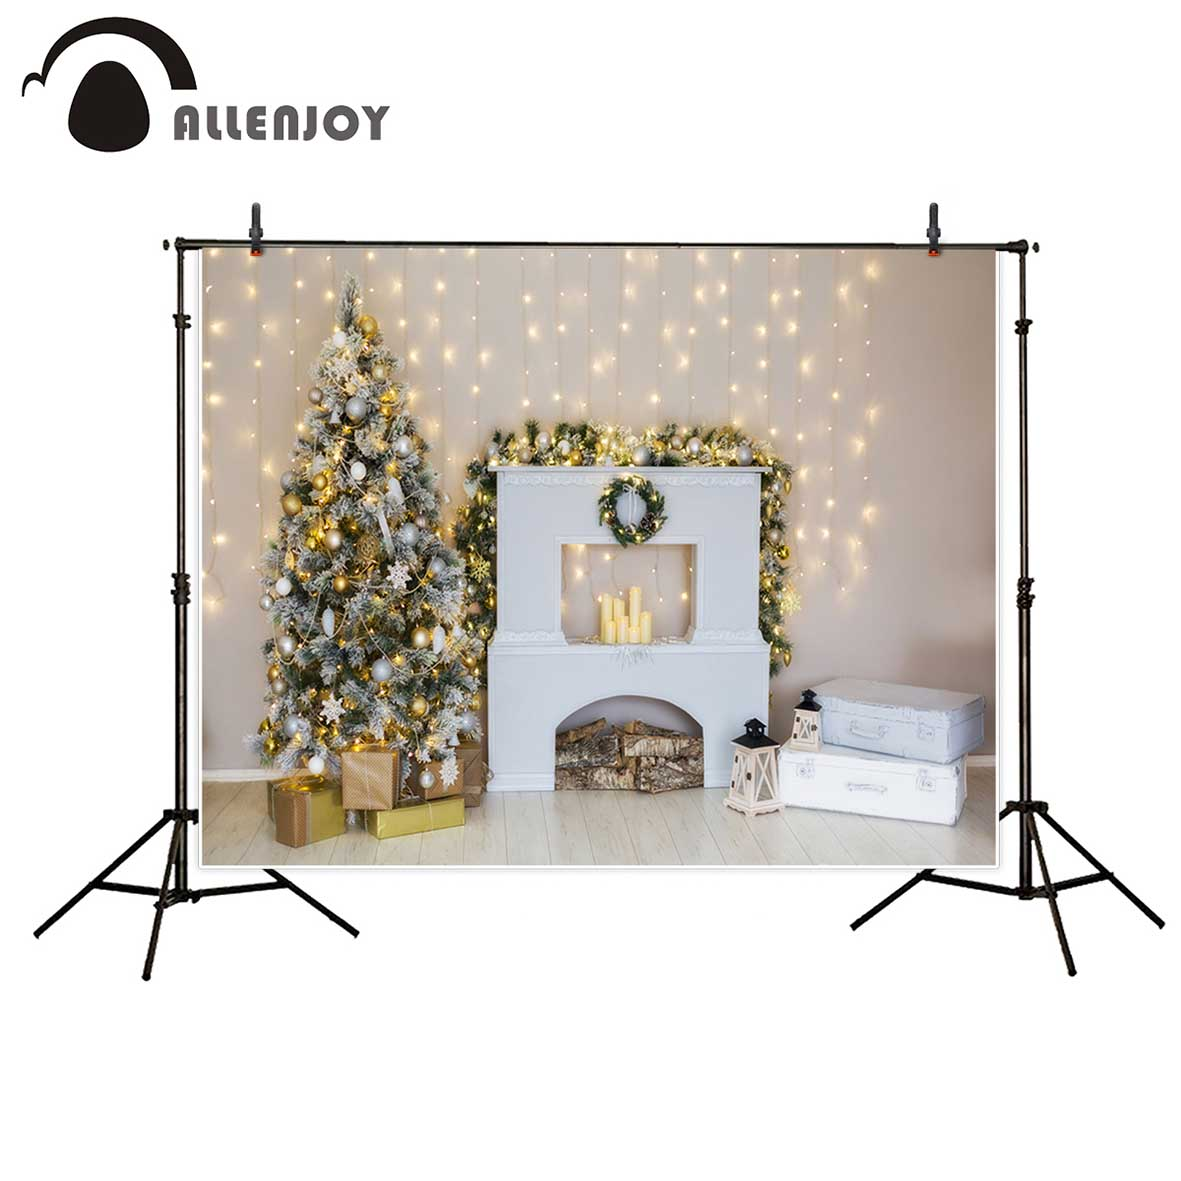 Allenjoy photo backdrops Christmas tree glitter indoor stove family party background photo printer fantasy props for kids family photo